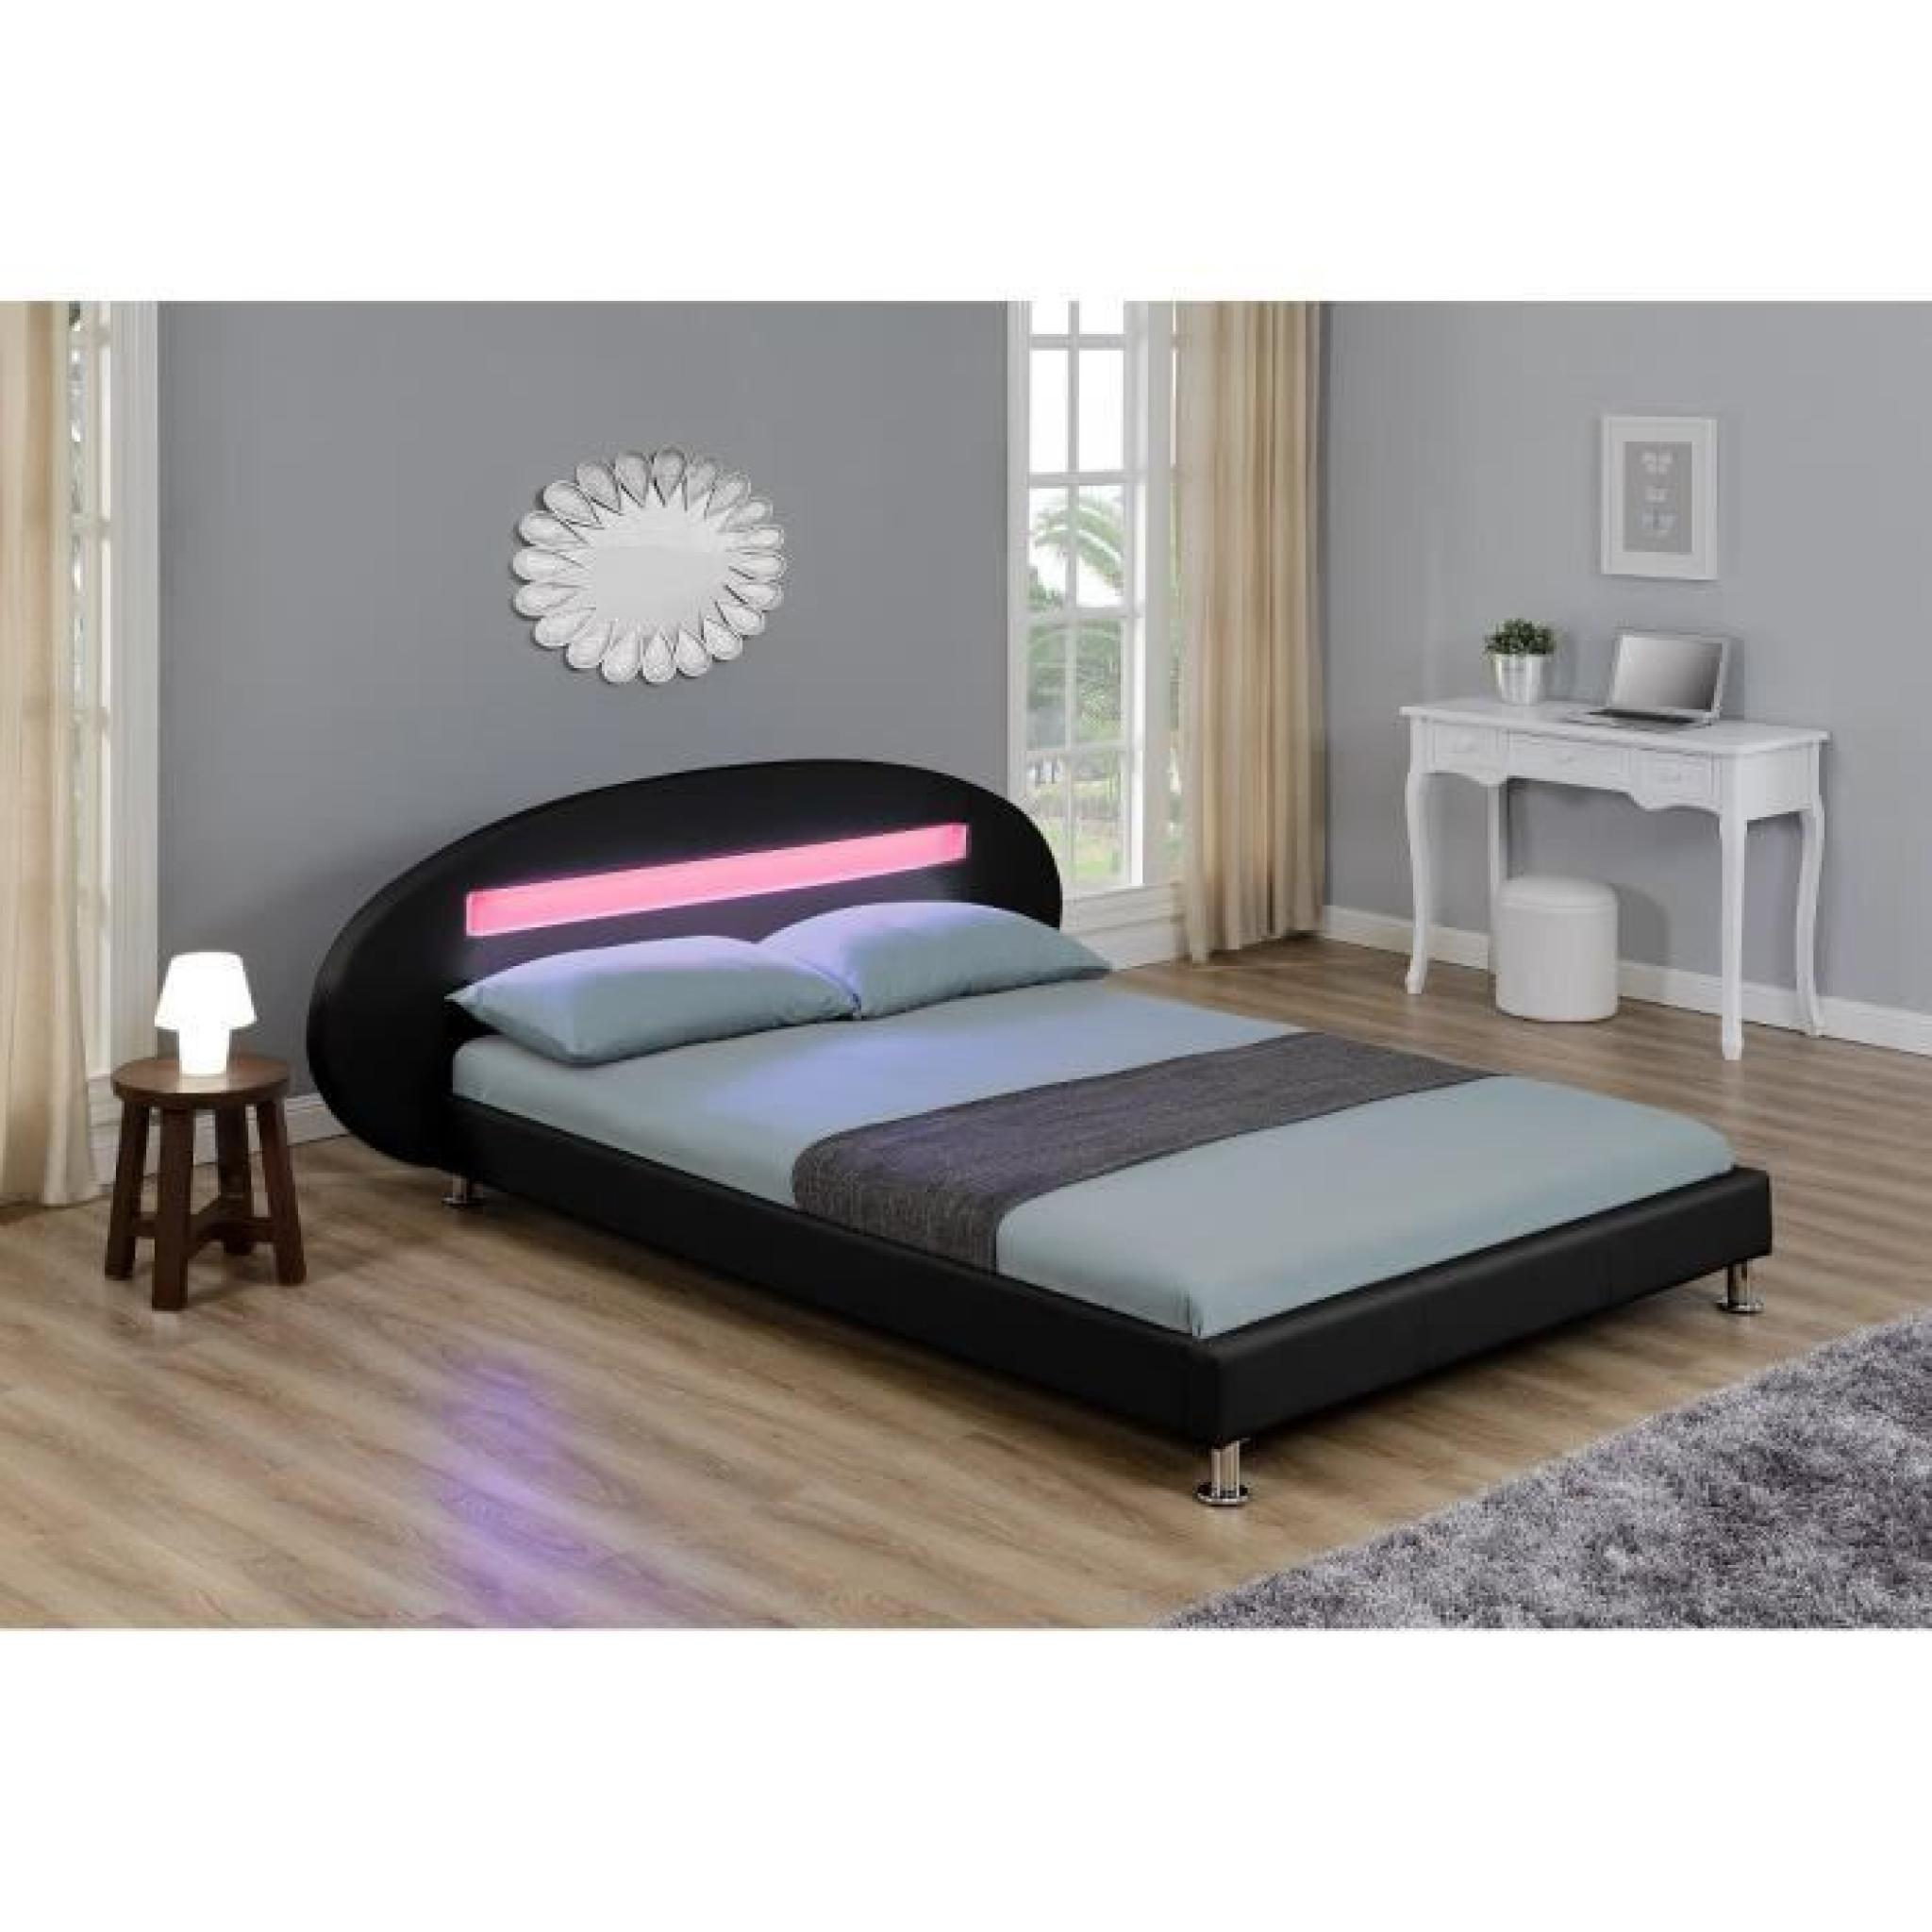 orion lit led adulte 140 x 190 cm noir achat vente lit pas cher couleur et. Black Bedroom Furniture Sets. Home Design Ideas